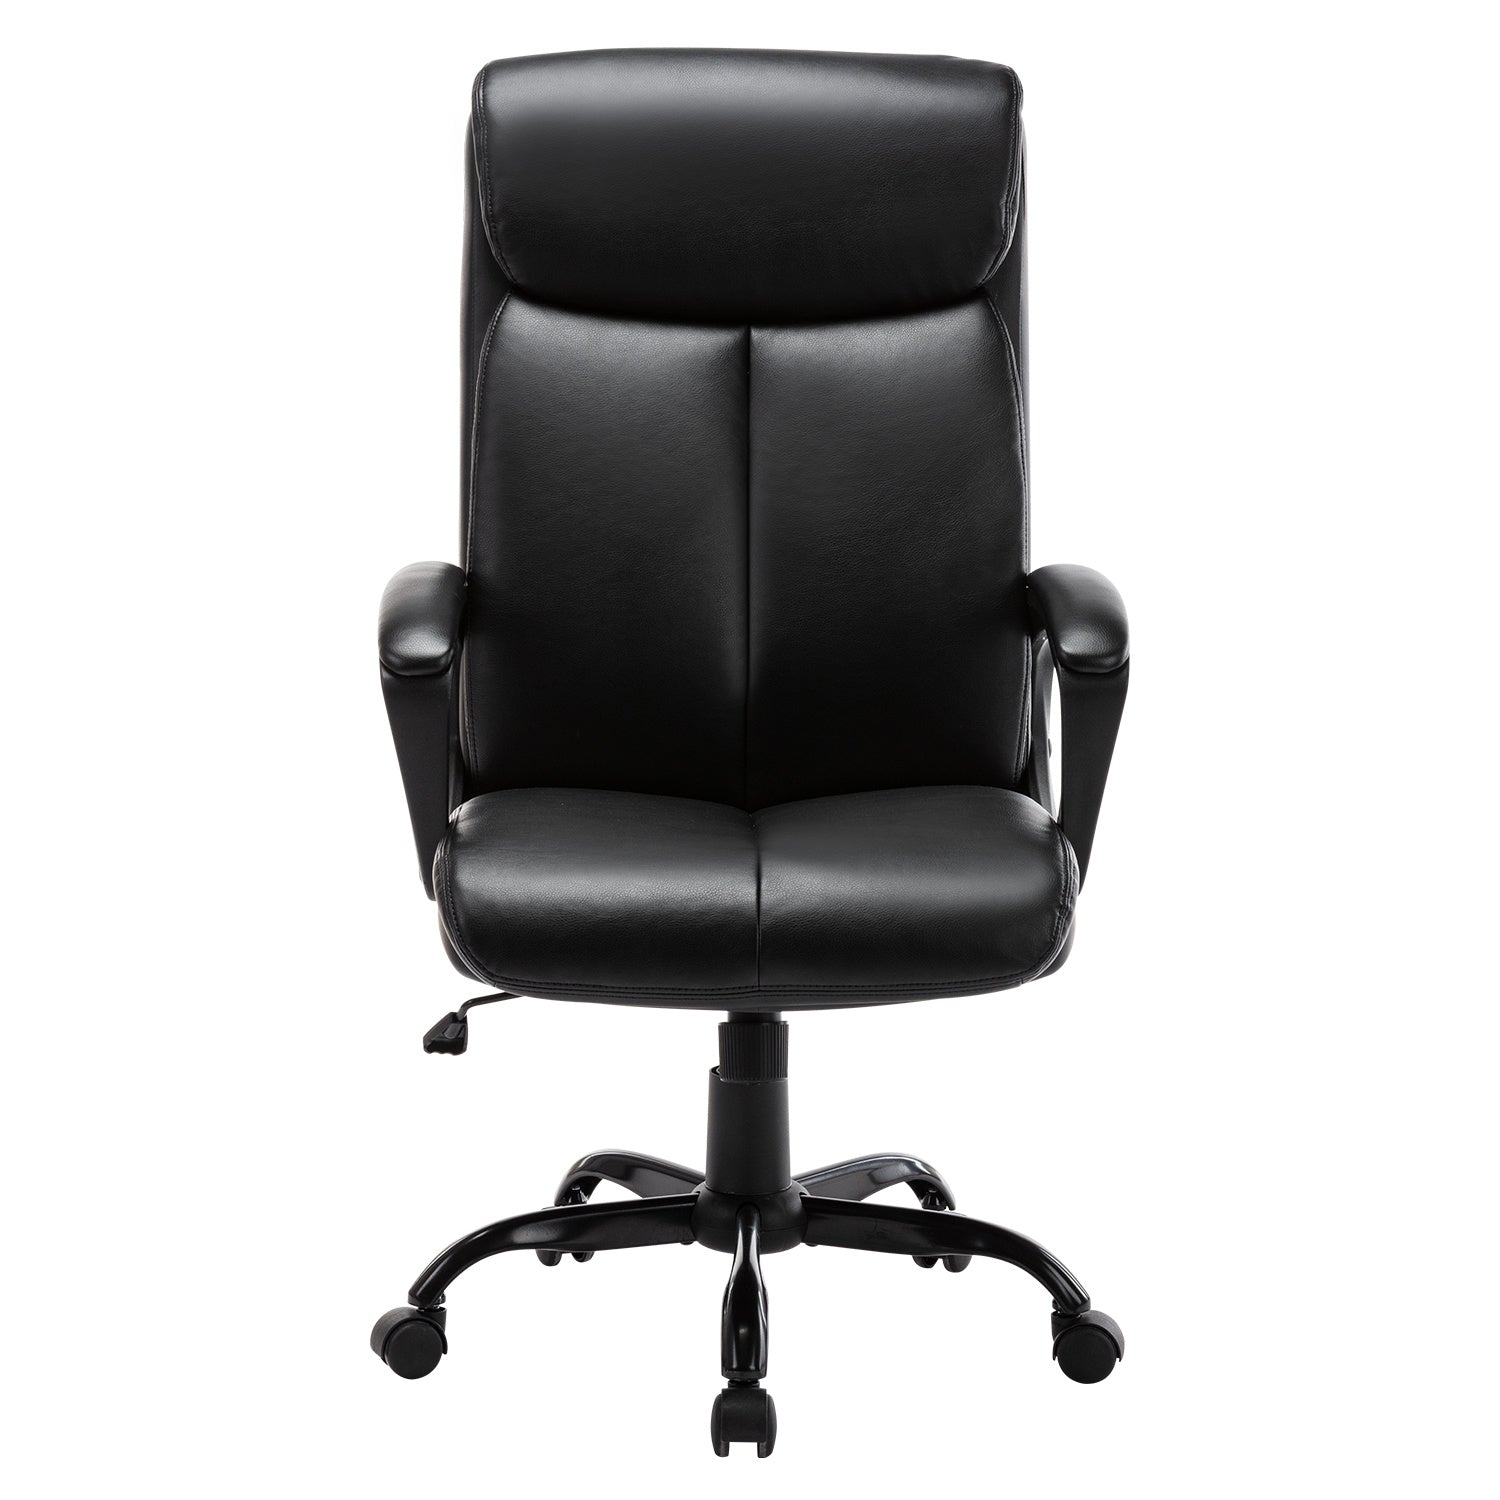 Wess Executive Office Chair